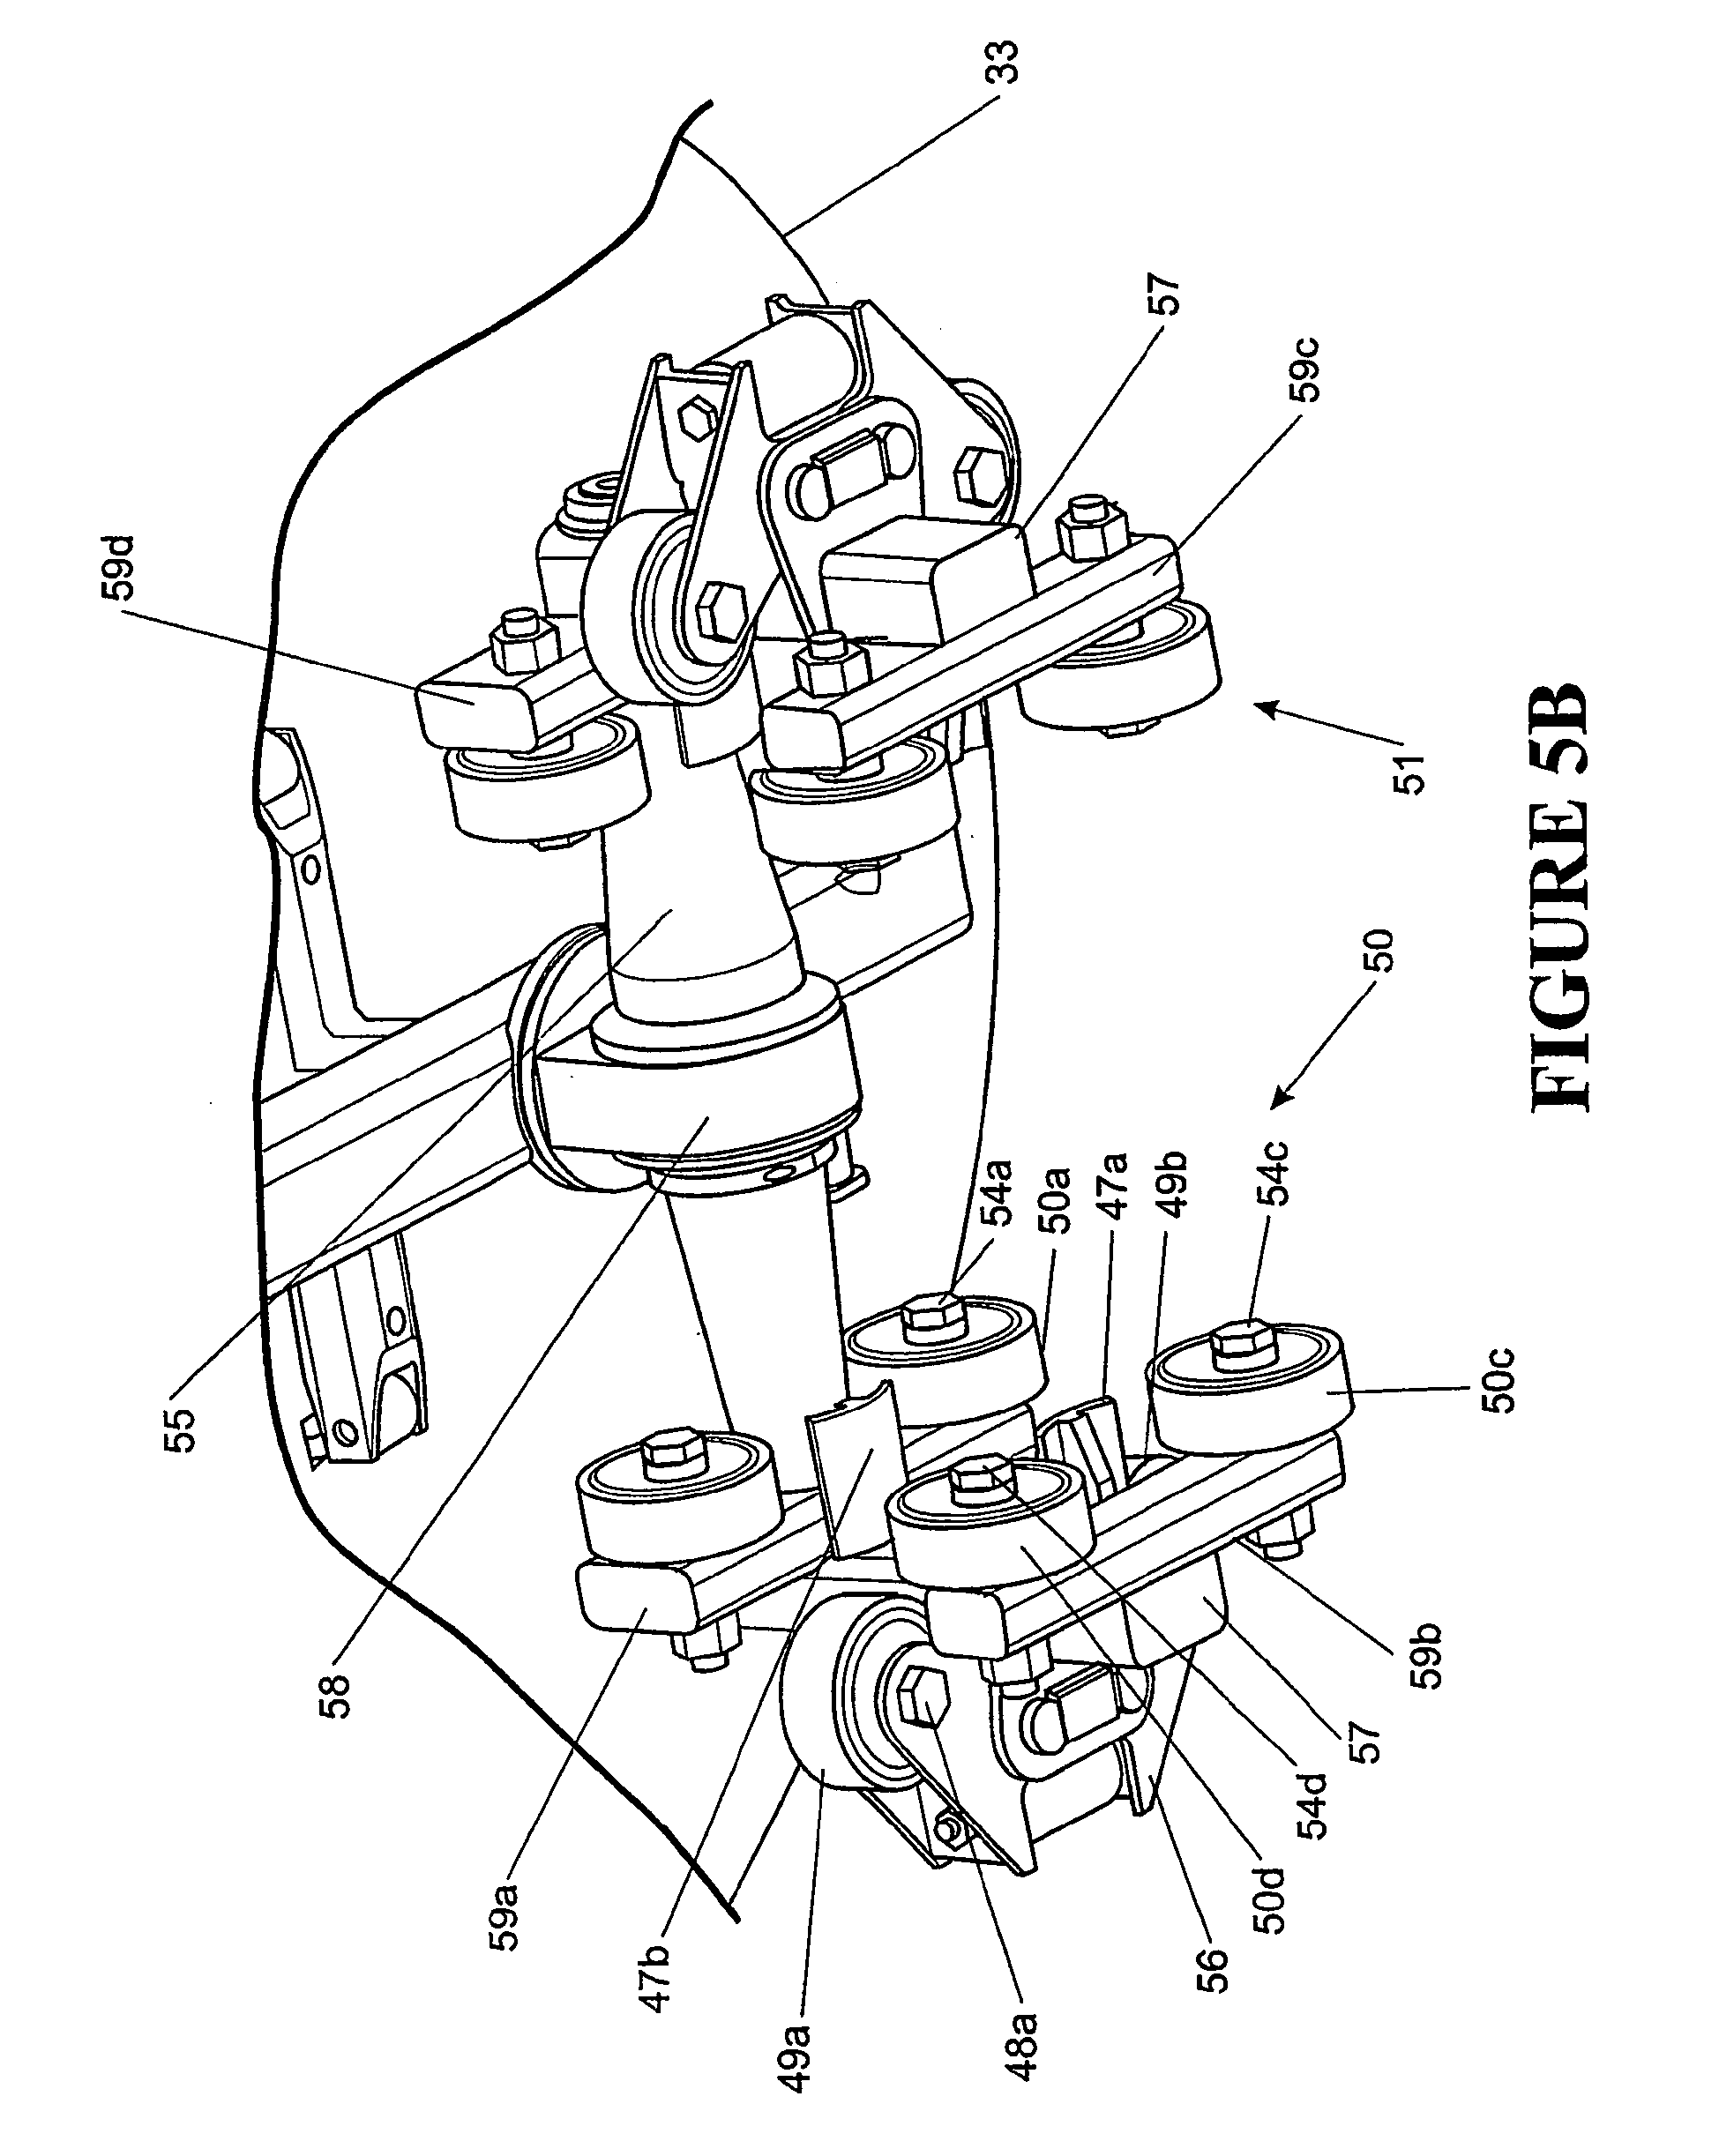 patent ep1912715b1 - drag racing roller coaster amusement ride and launch system